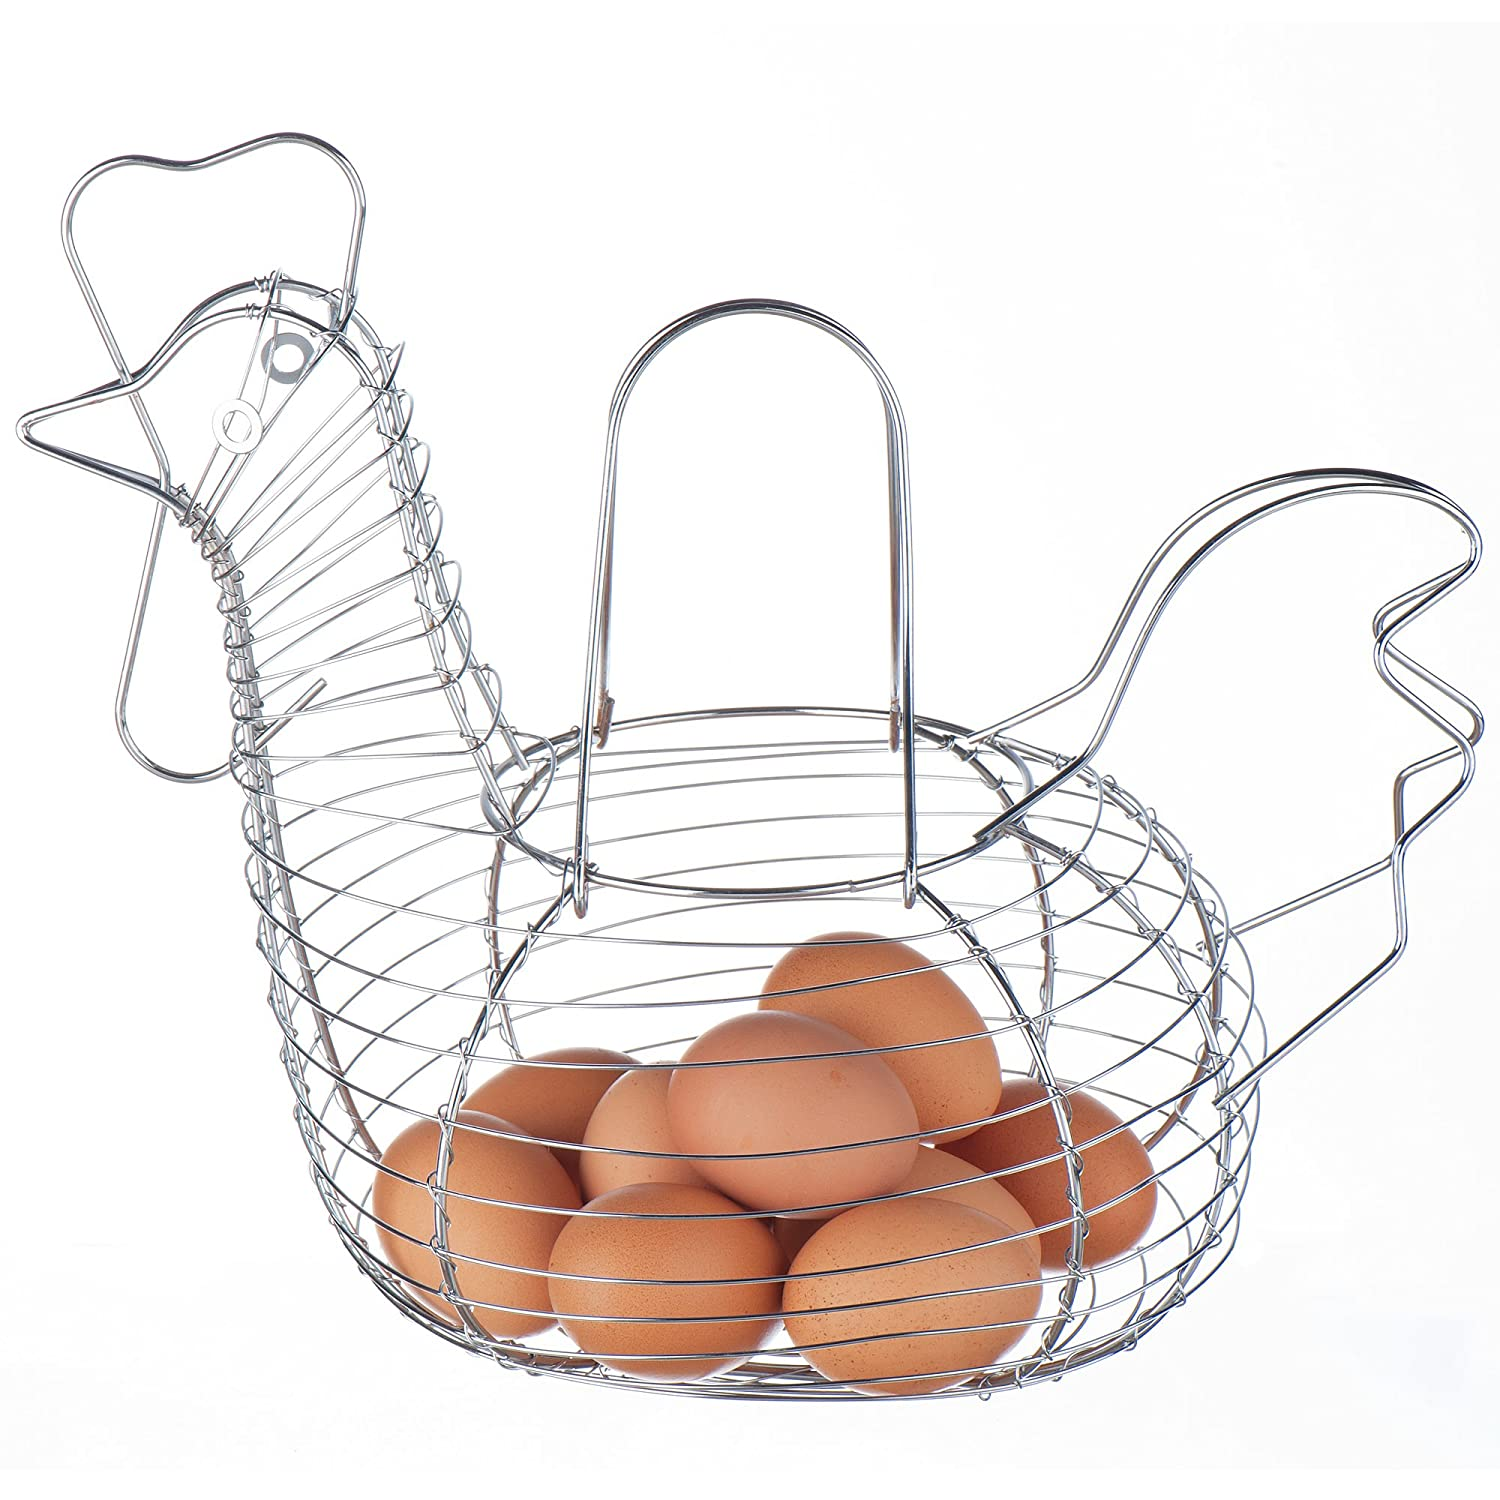 VonShef – Chicken / Hen Wire Egg Basket Holder Storage Display - Chrome Plated – Large (34 x 27cm)